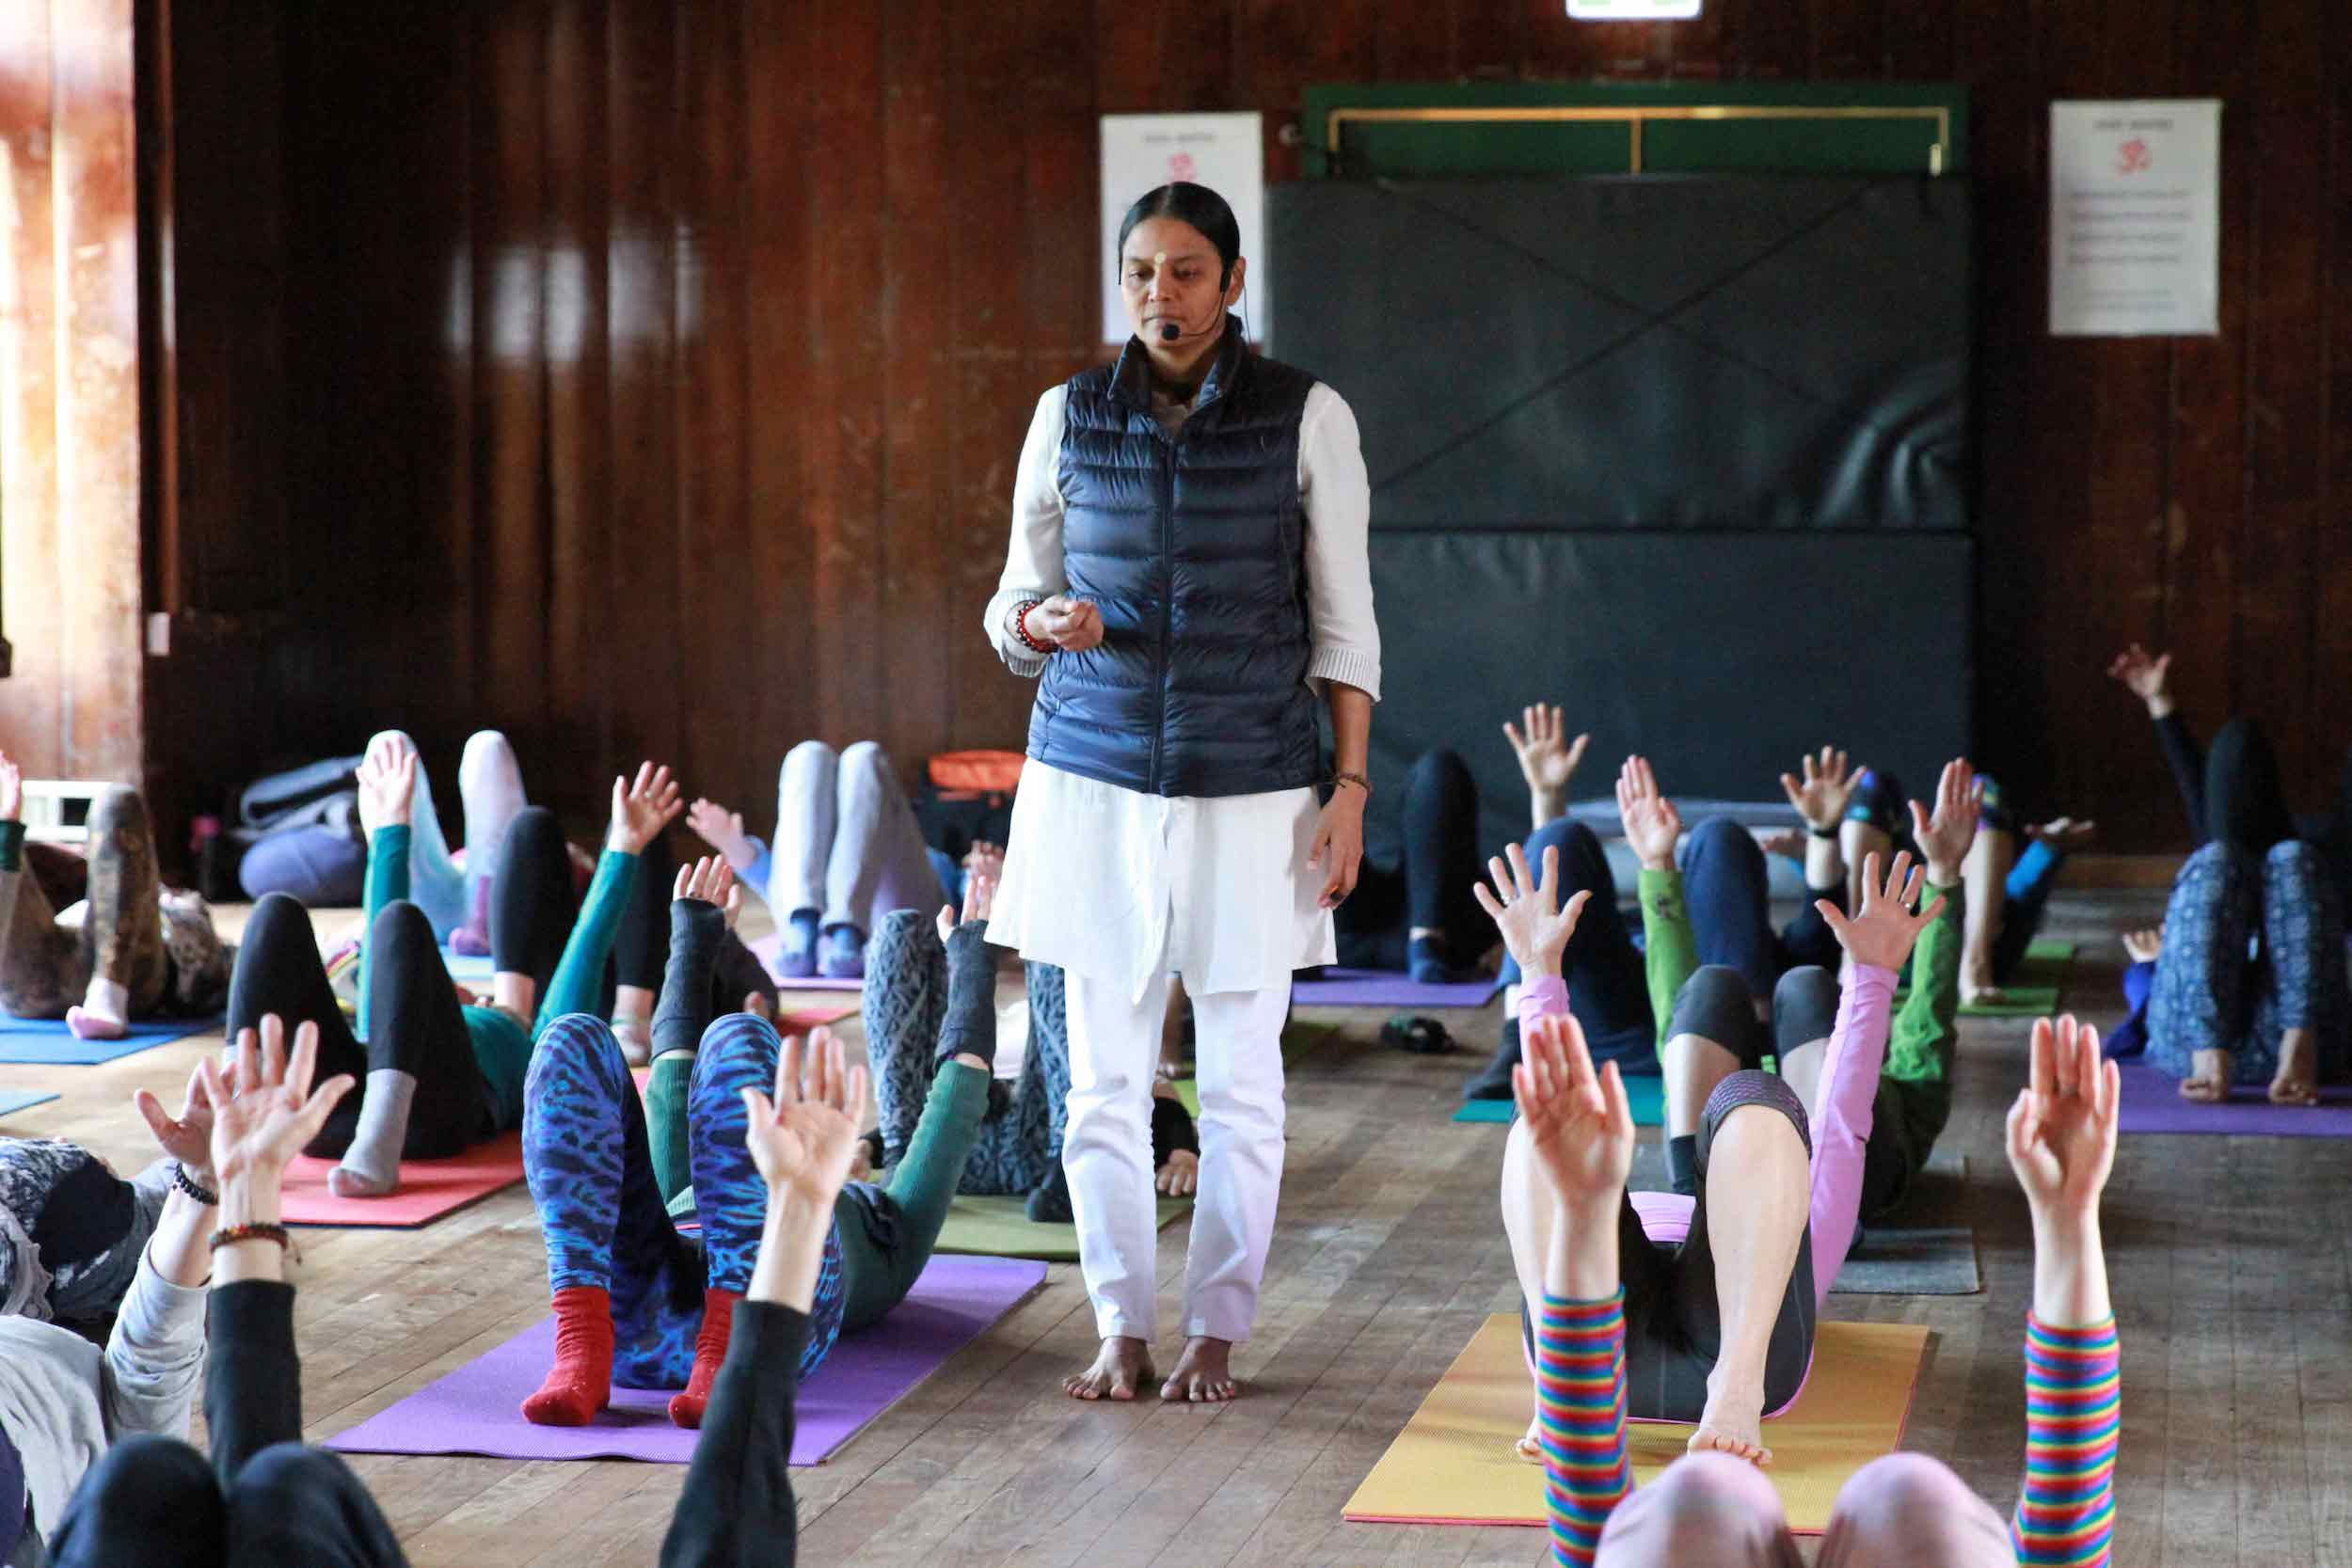 Yogafest Retreat in Somers – When and how did it all start?